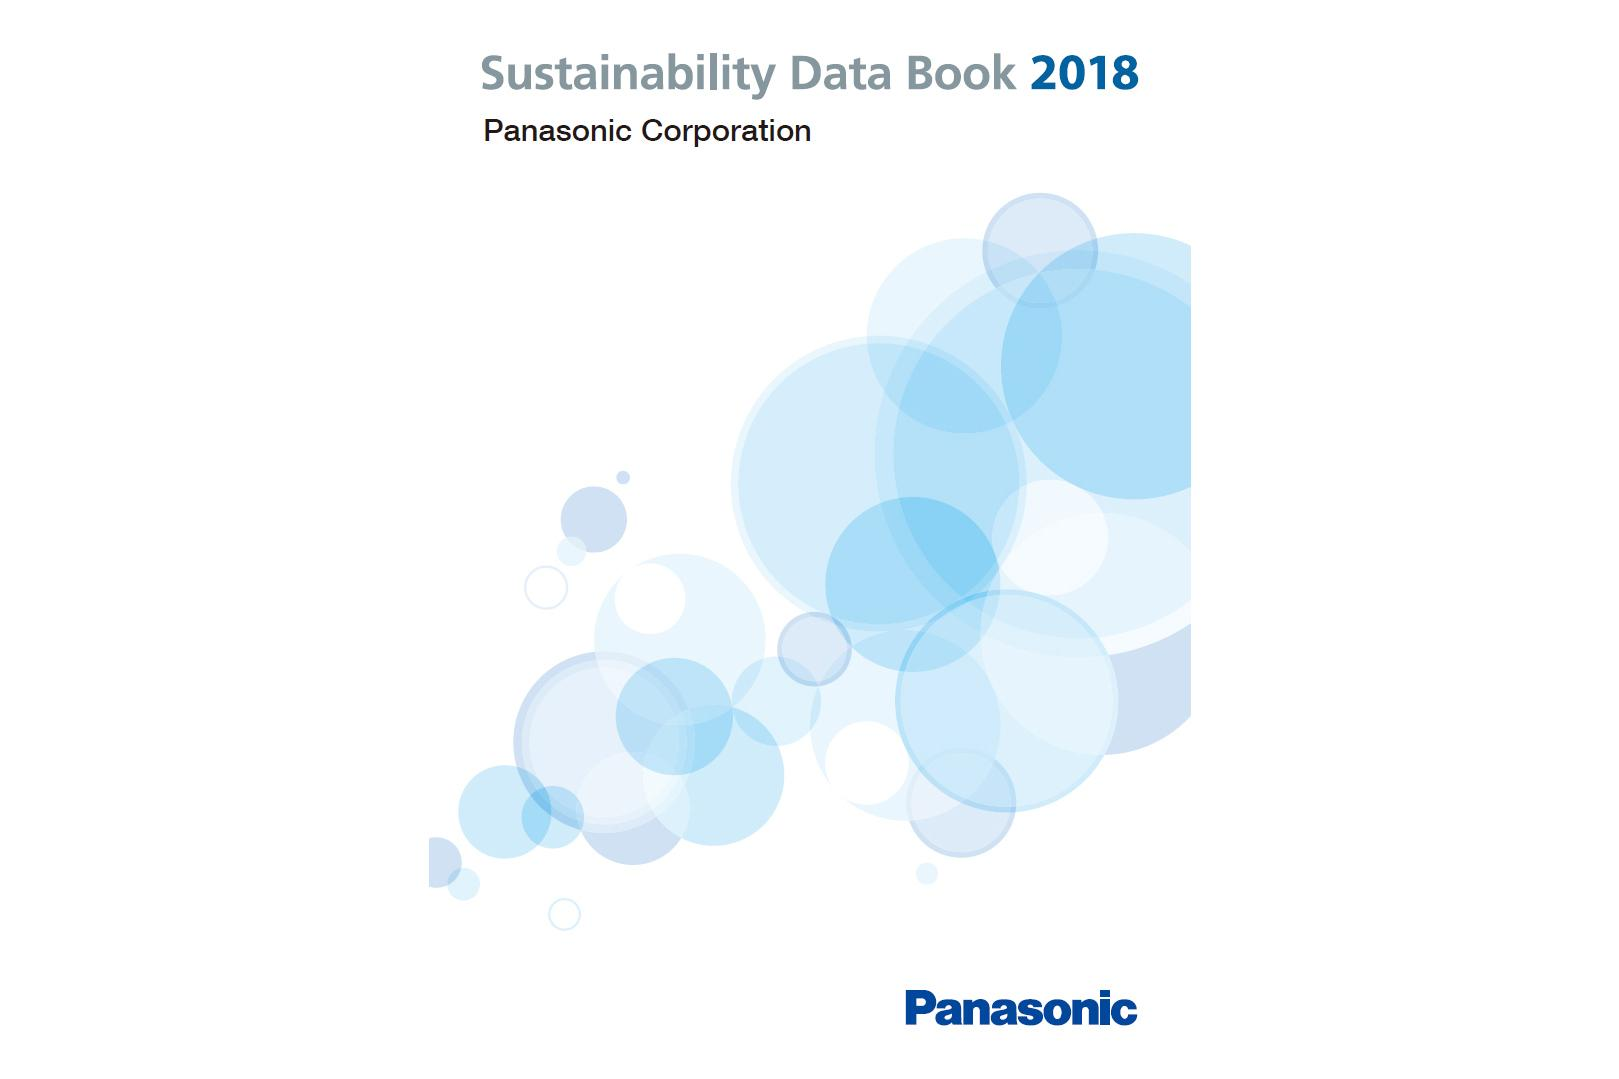 image: Panasonic Sustainability Data Book 2018